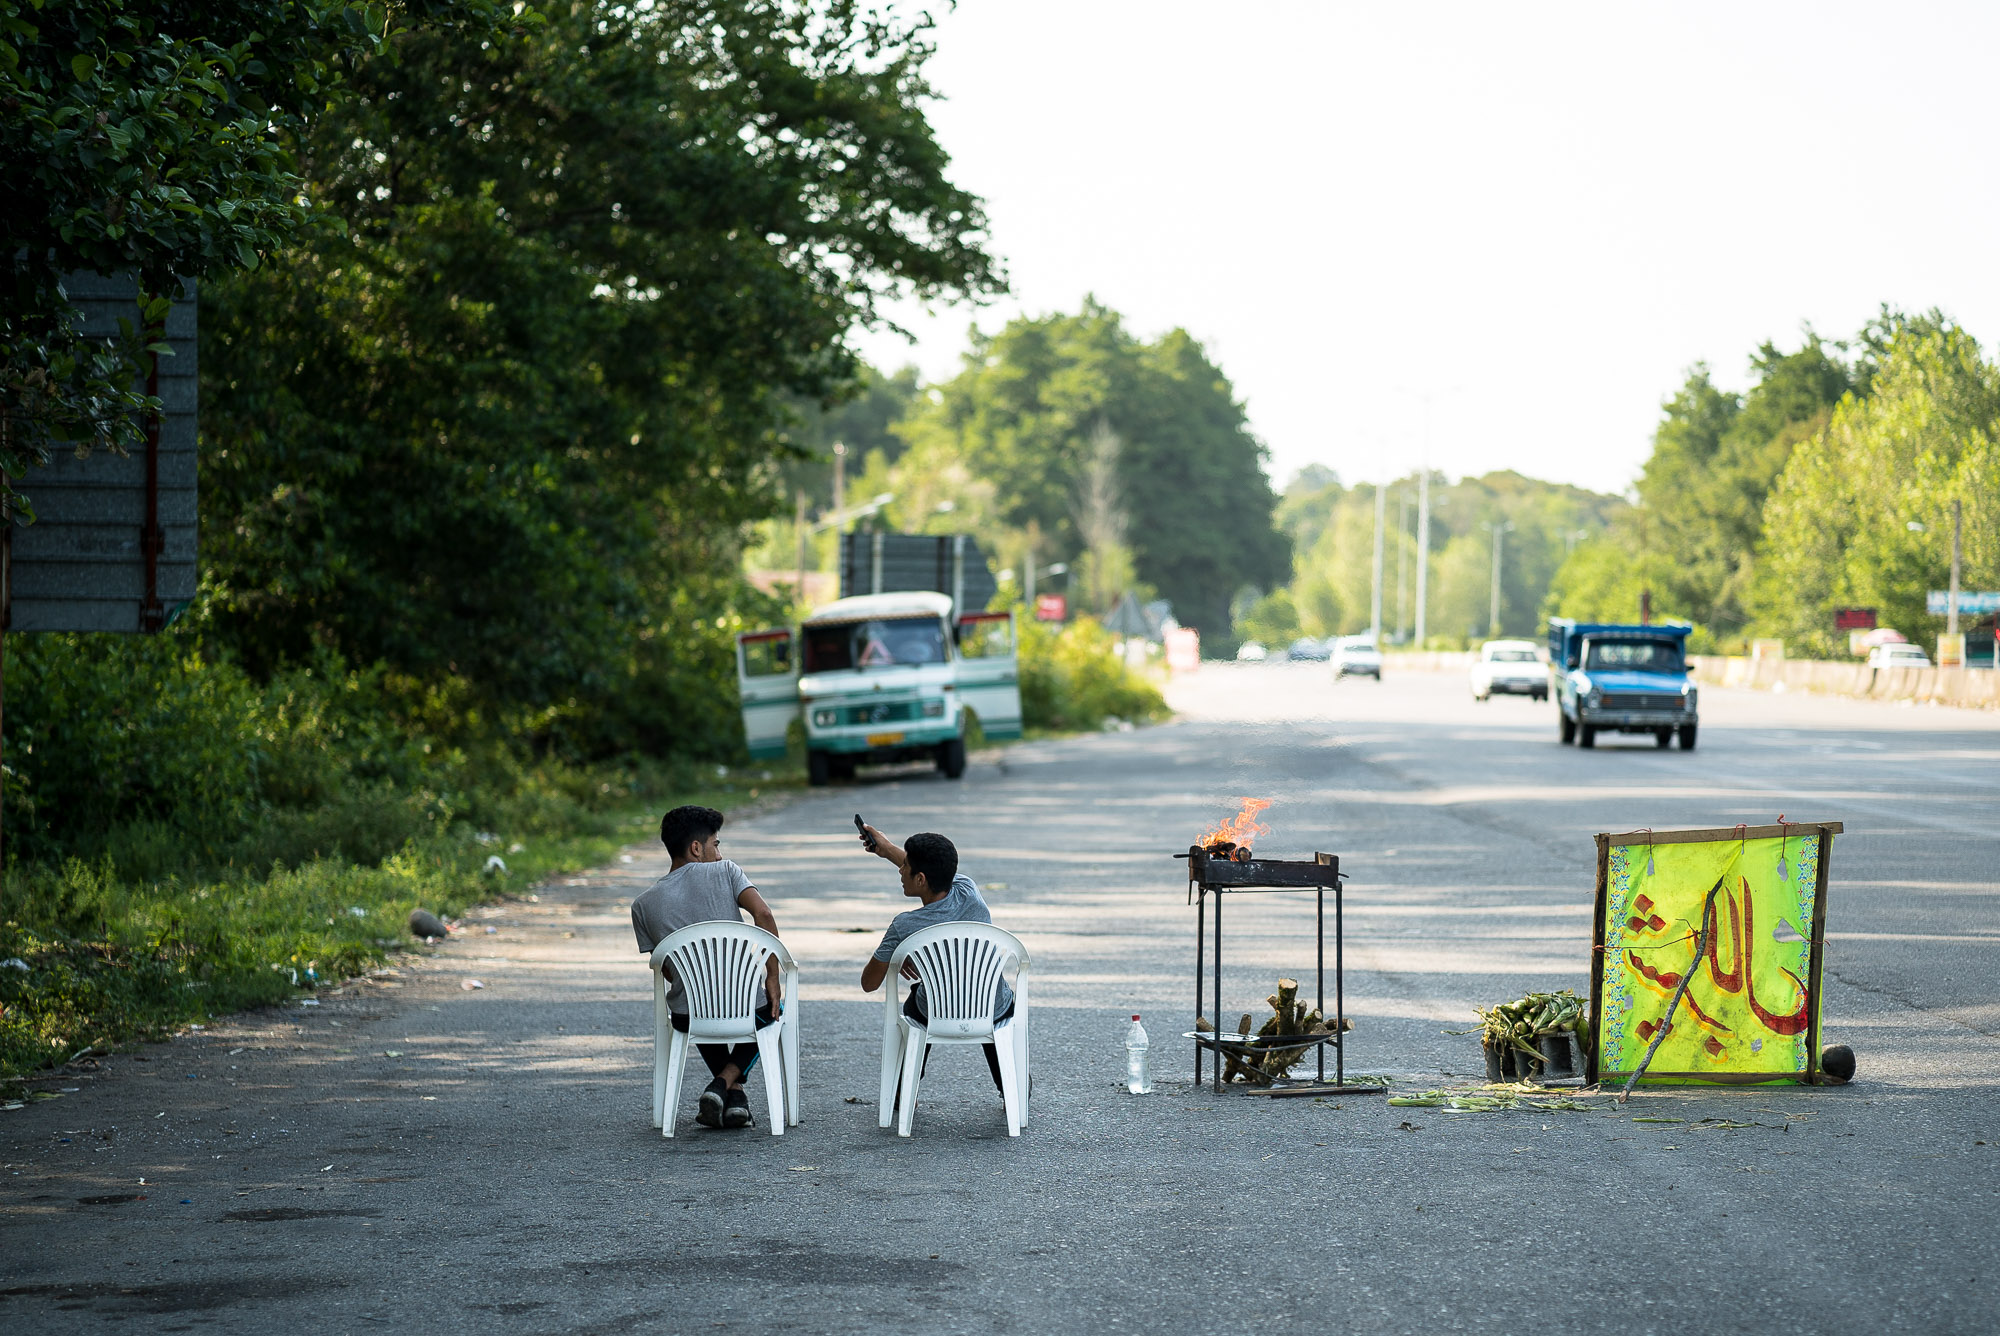 dudes selling stuff on the highway